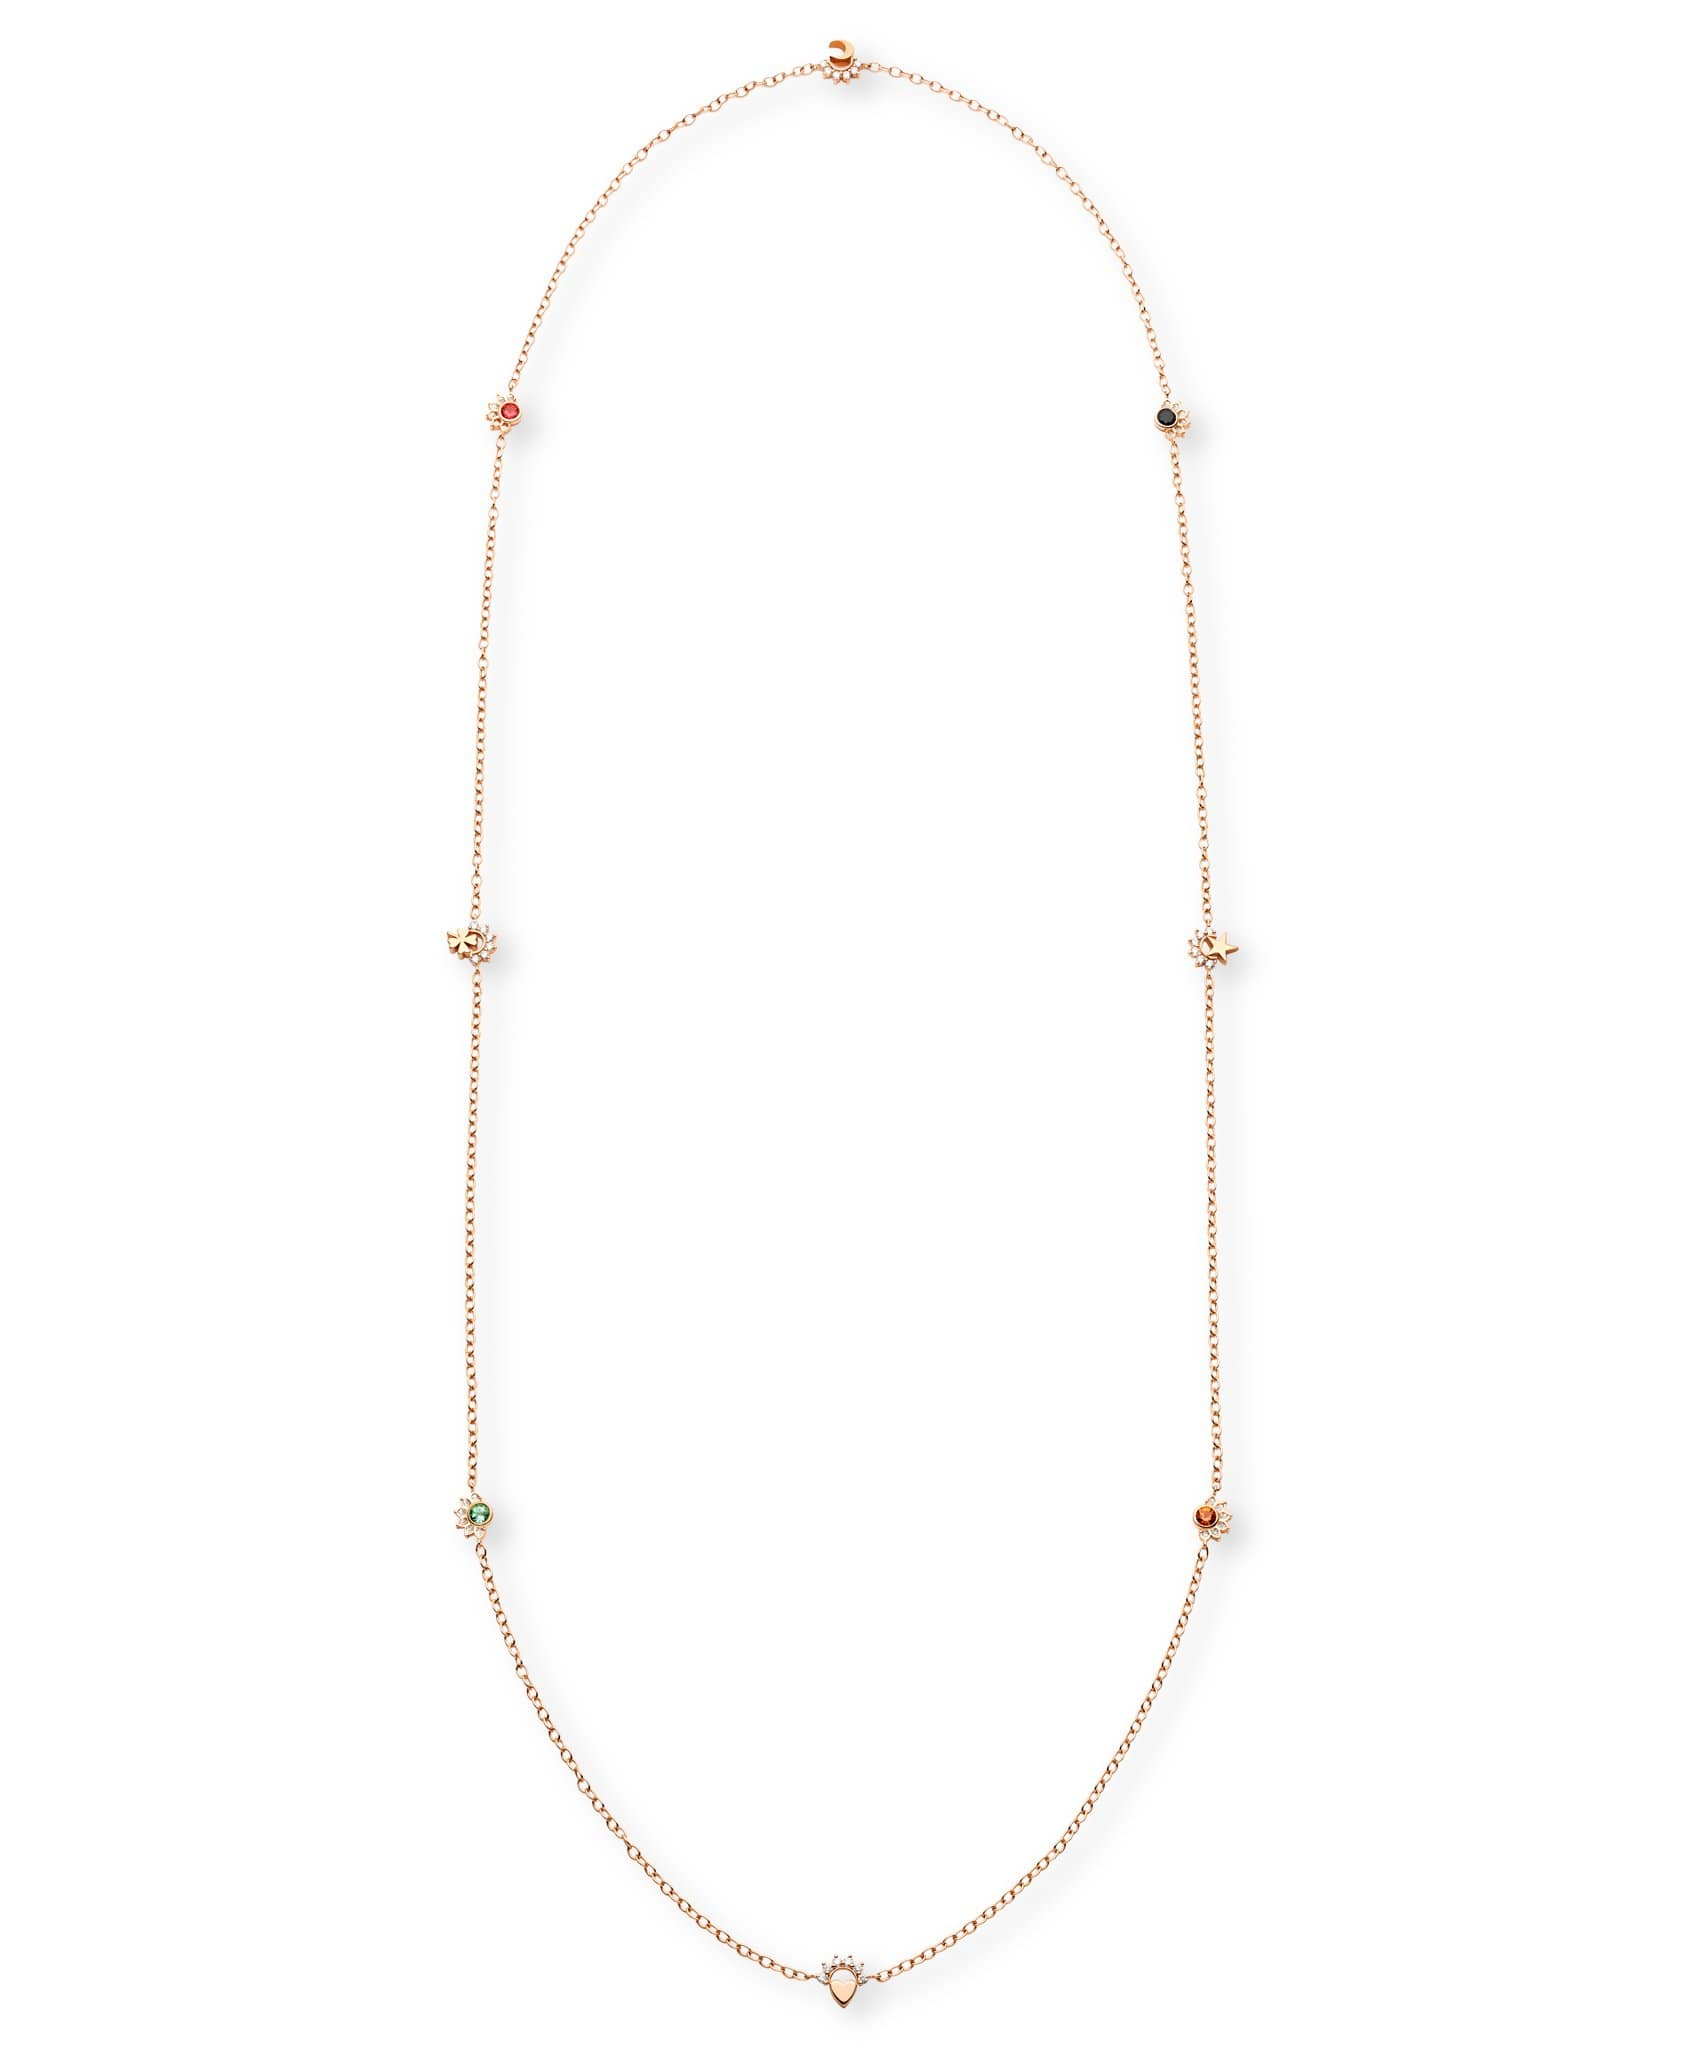 Multi-Motifs Long Necklace: Discover Luxury Fine Jewelry | Nouvel Heritage || Rose Gold